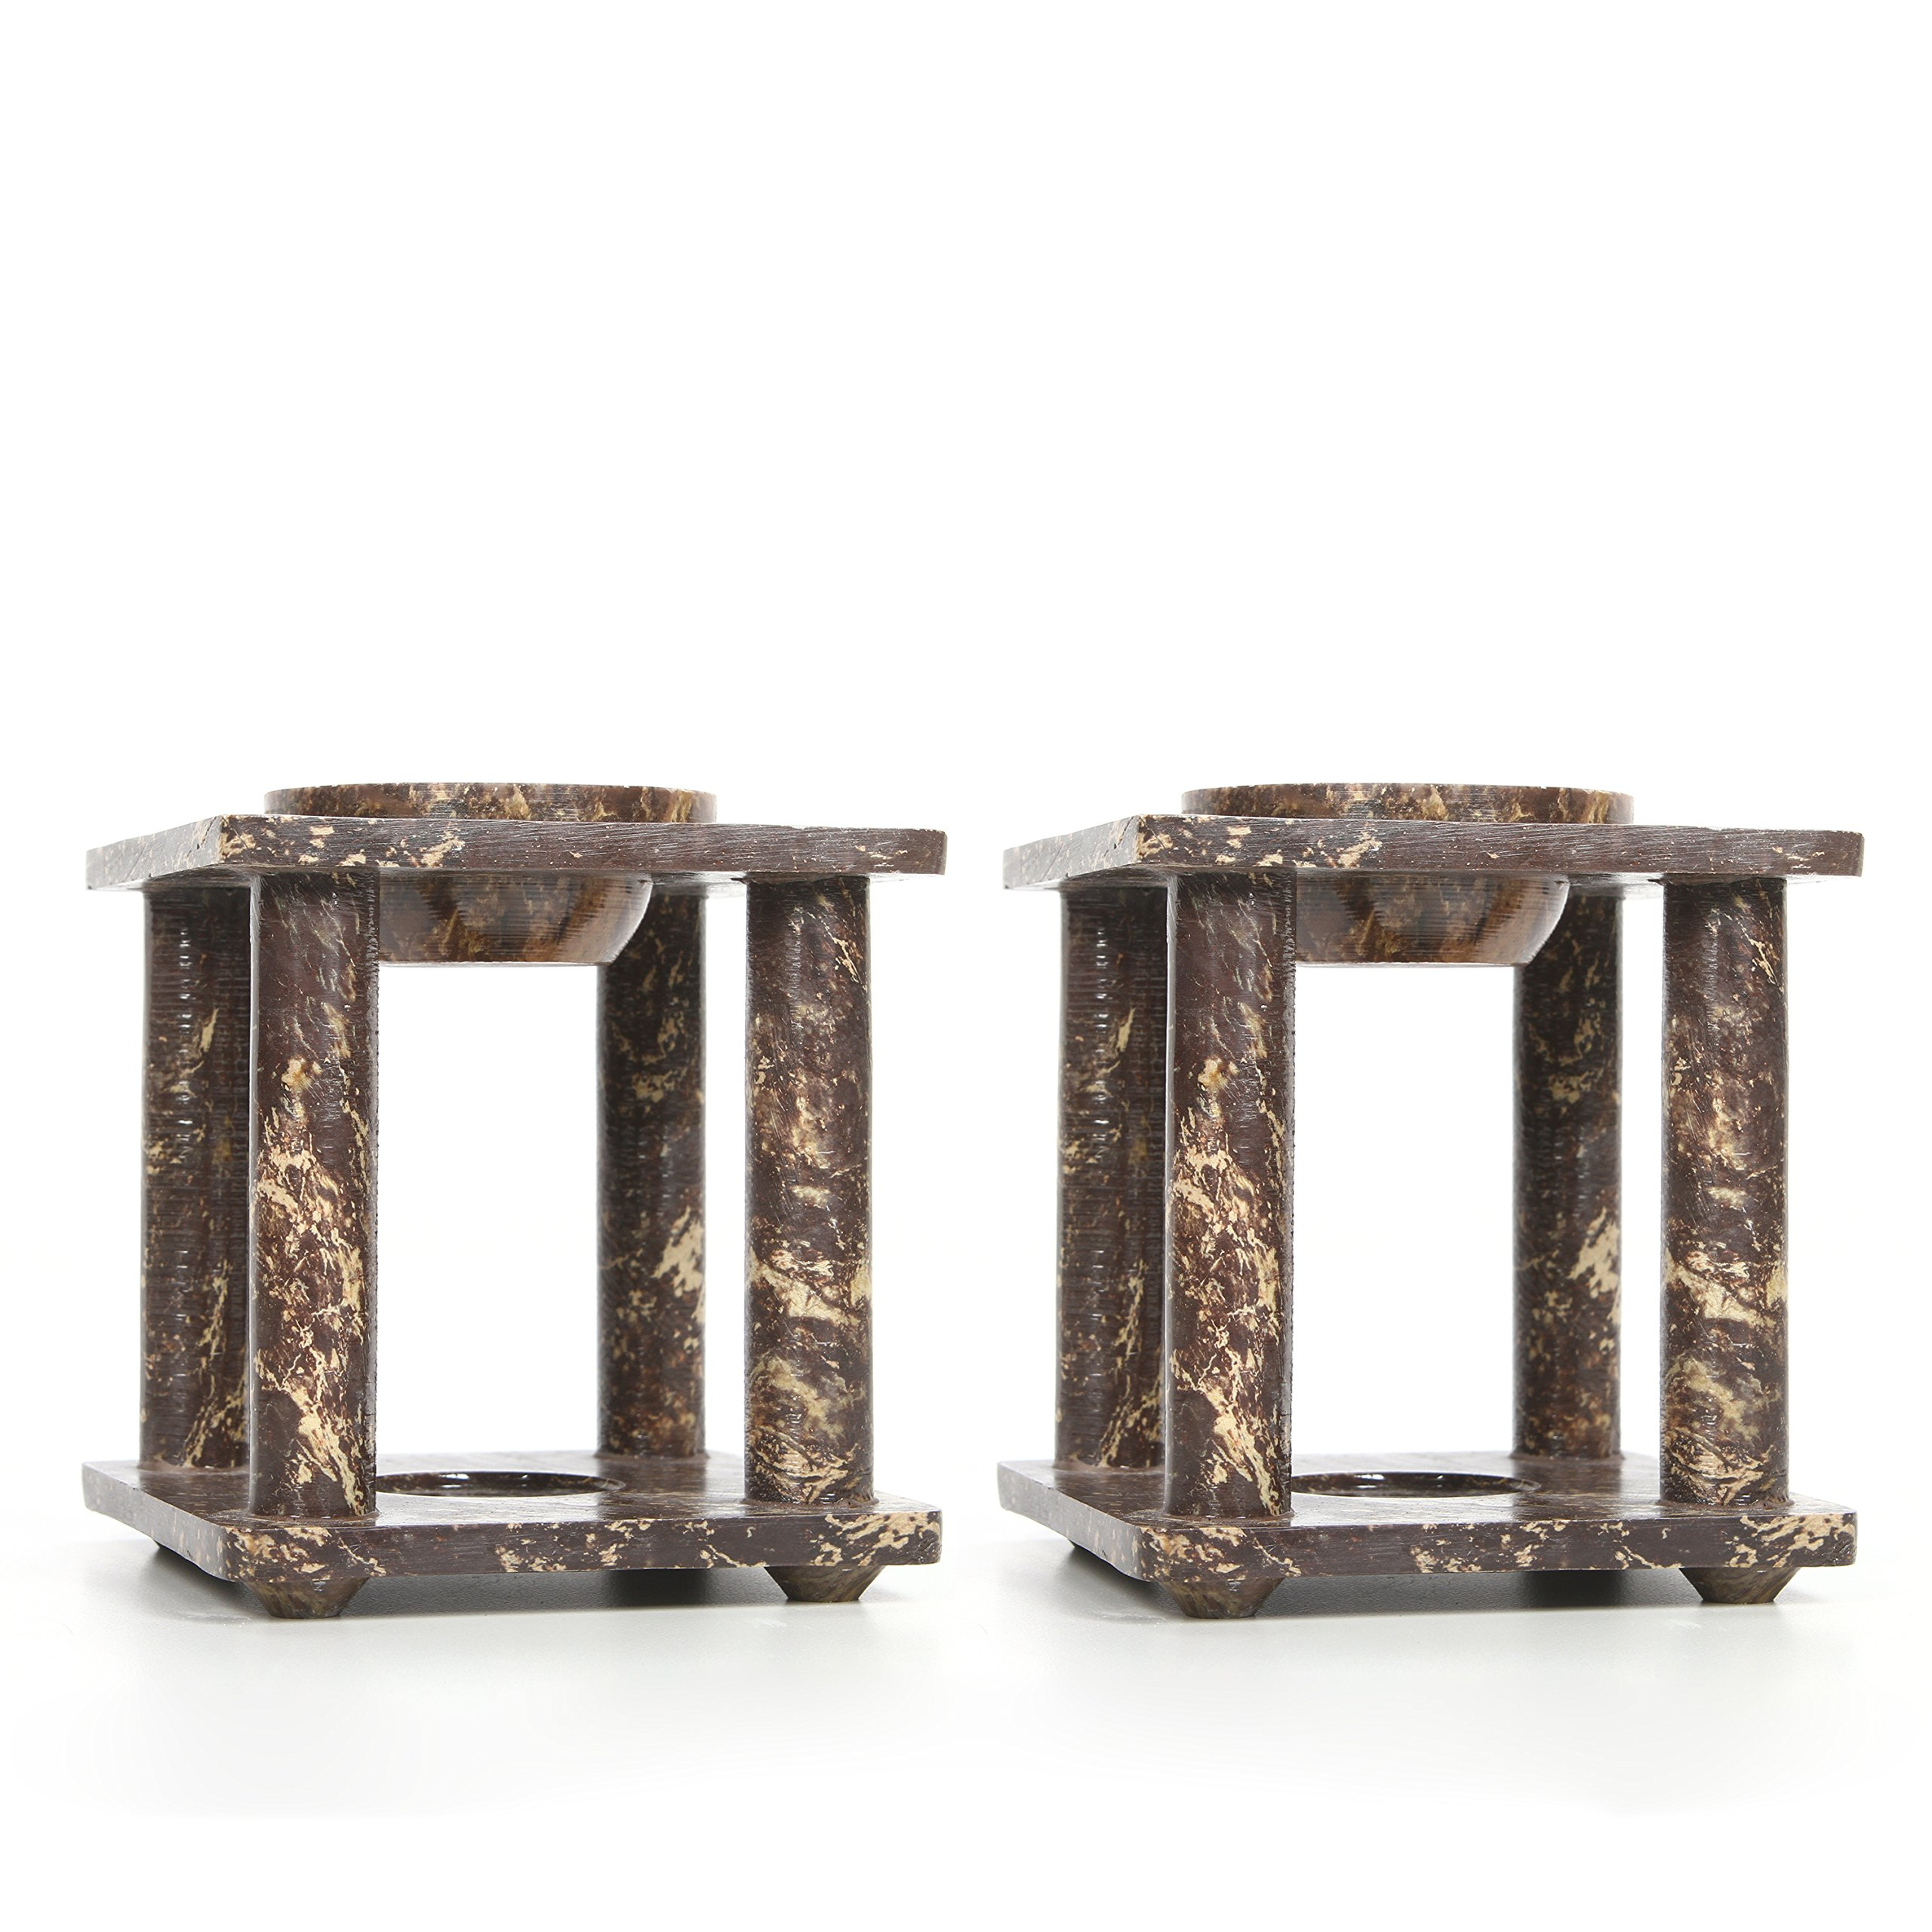 Hosley Set of 2 Brown Soapstone Oil Burner- 4'' High. Ideal for Spa and Aromatherapy. Use with Brand Wax Melts/Cubes, Essential Oils and Fragrance Oils. O5